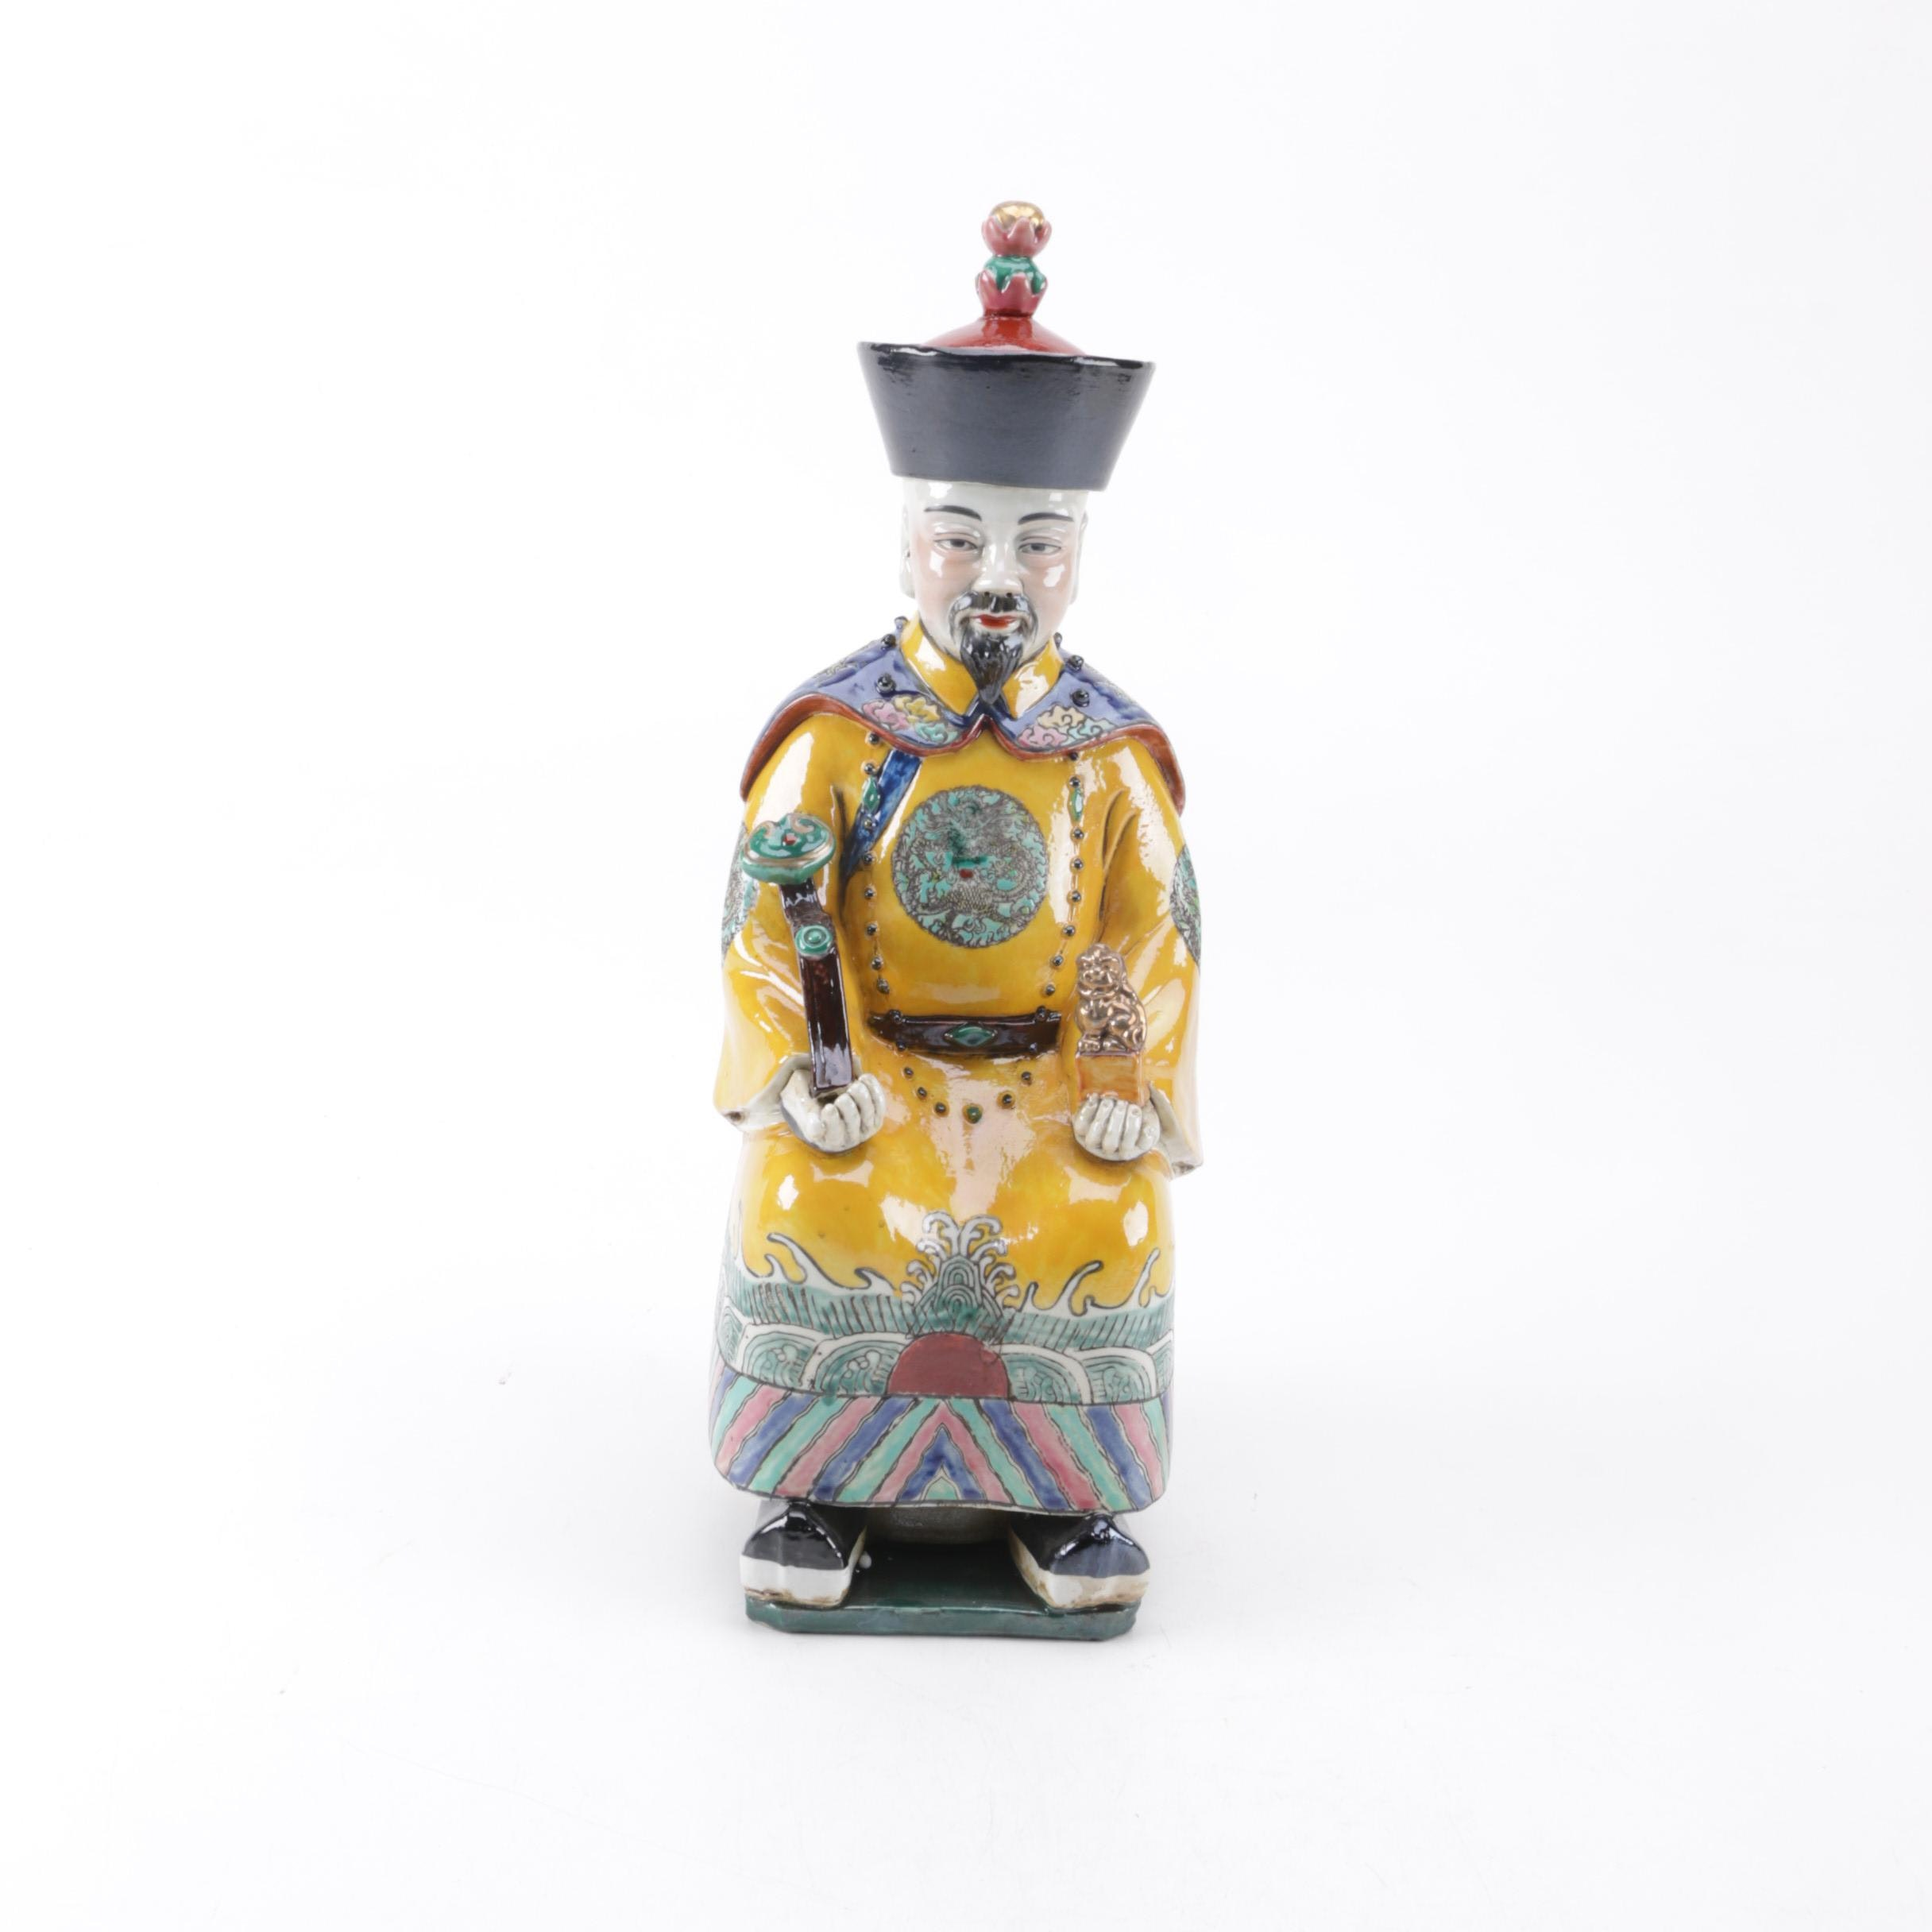 Chinese Ceramic Figurine of a Seated Man